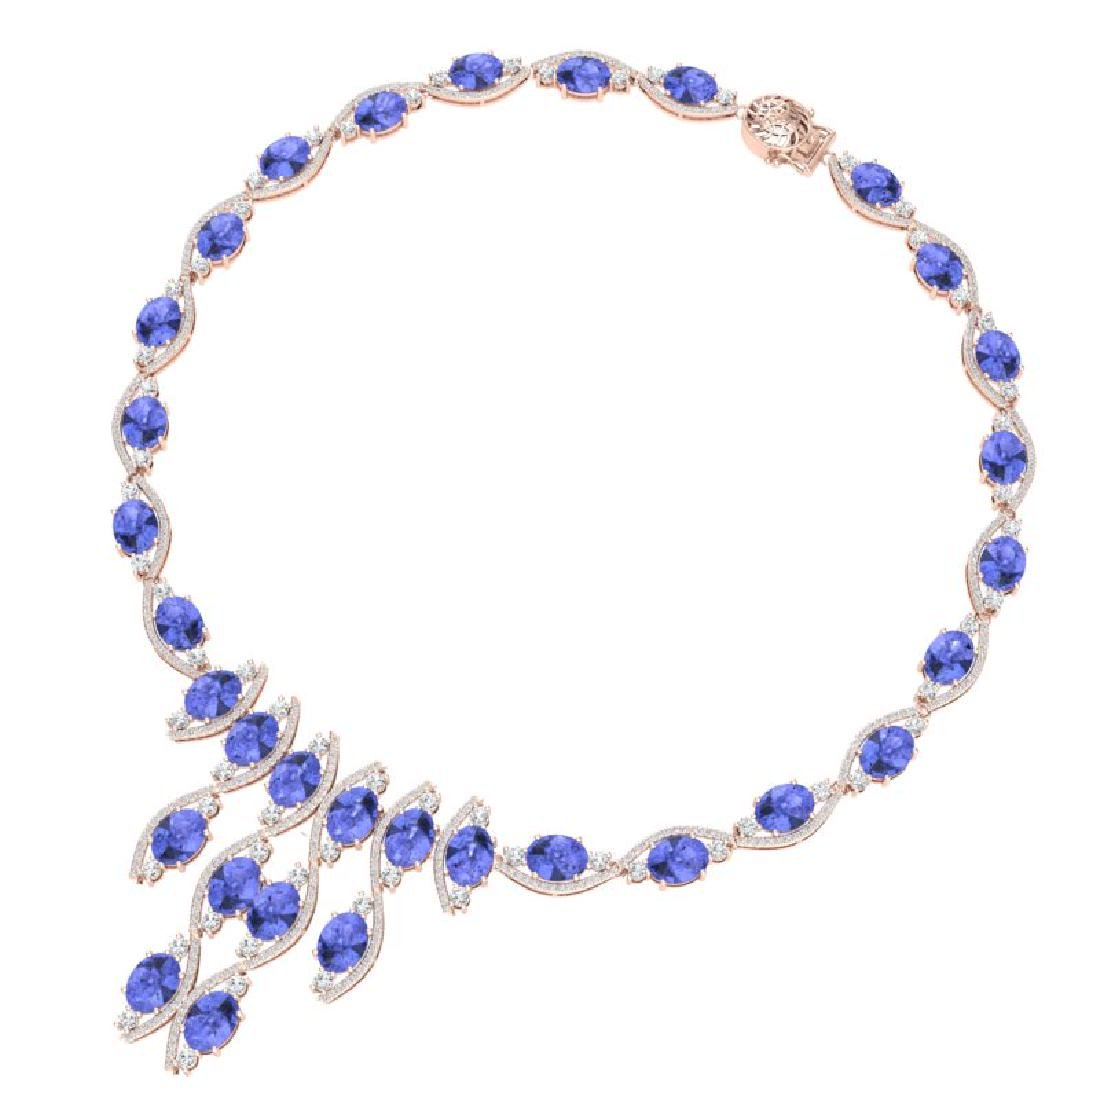 65.60 CTW Royalty Tanzanite & VS Diamond Necklace 18K - 3